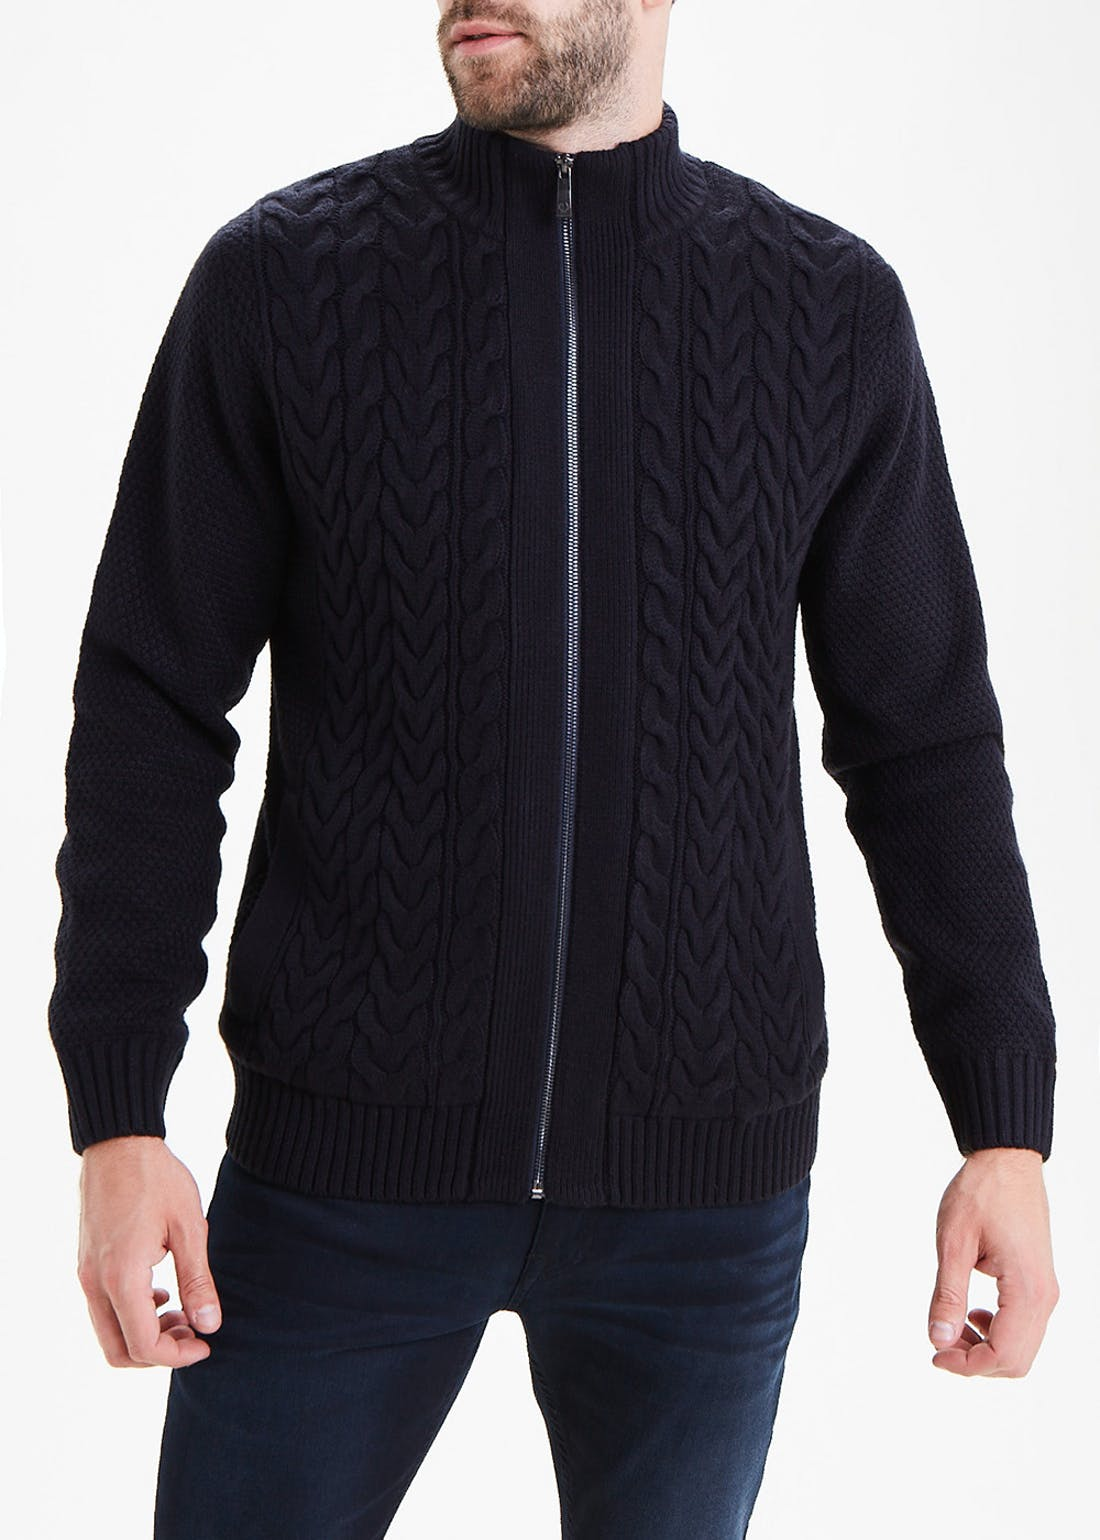 Lincoln Cable Knit Zip Up Cardigan